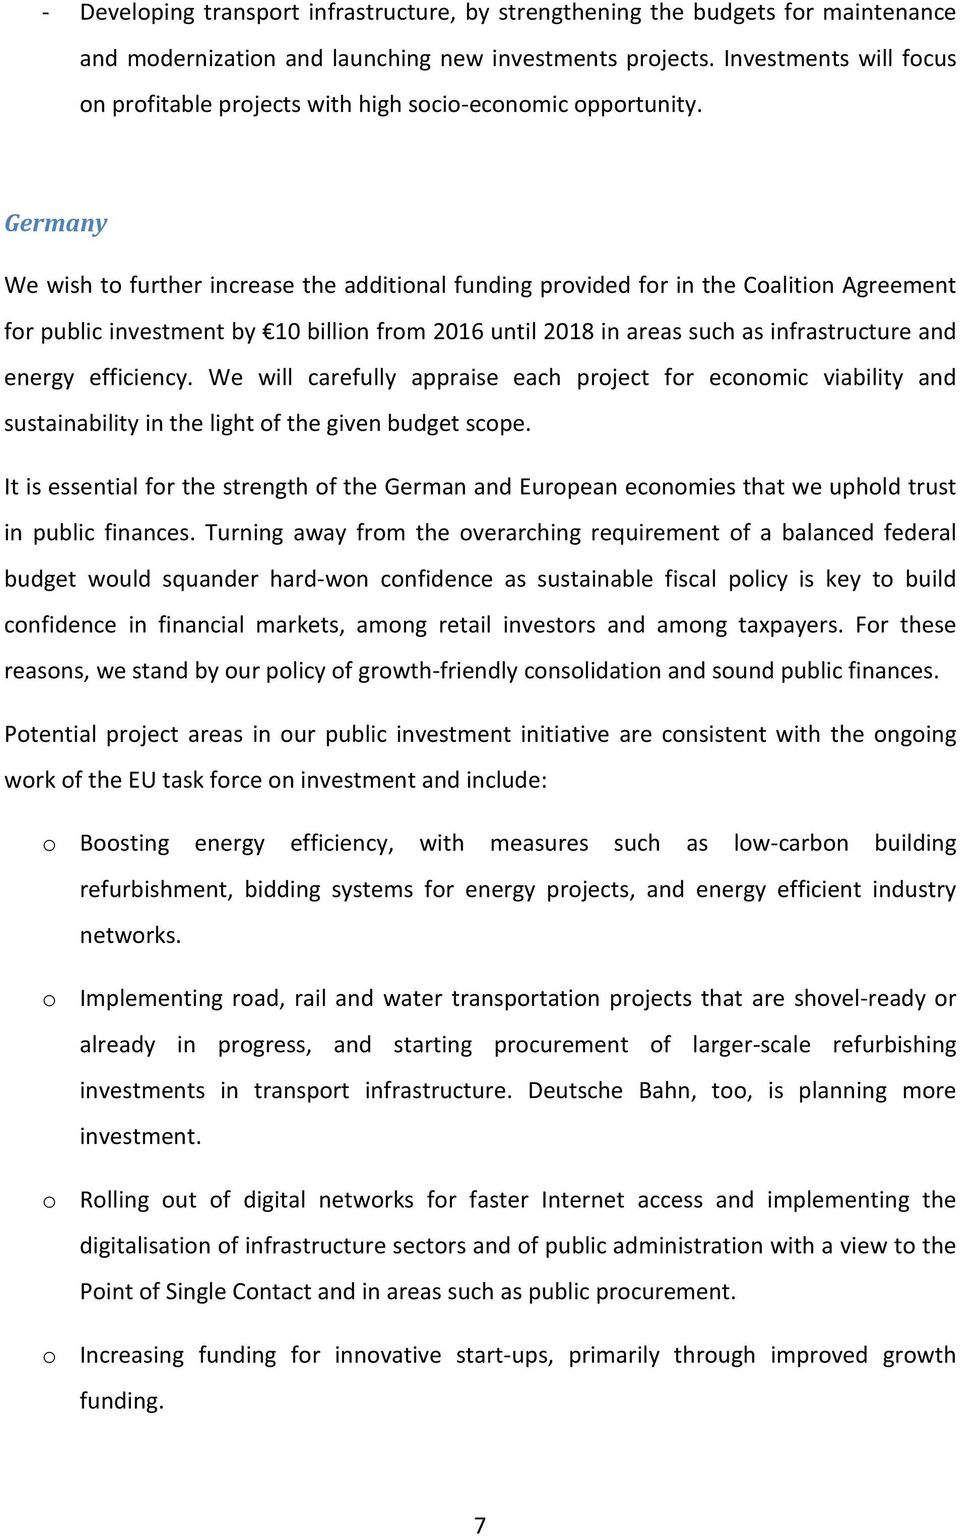 Germany We wish to further increase the additional funding provided for in the Coalition Agreement for public investment by 10 billion from 2016 until 2018 in areas such as infrastructure and energy